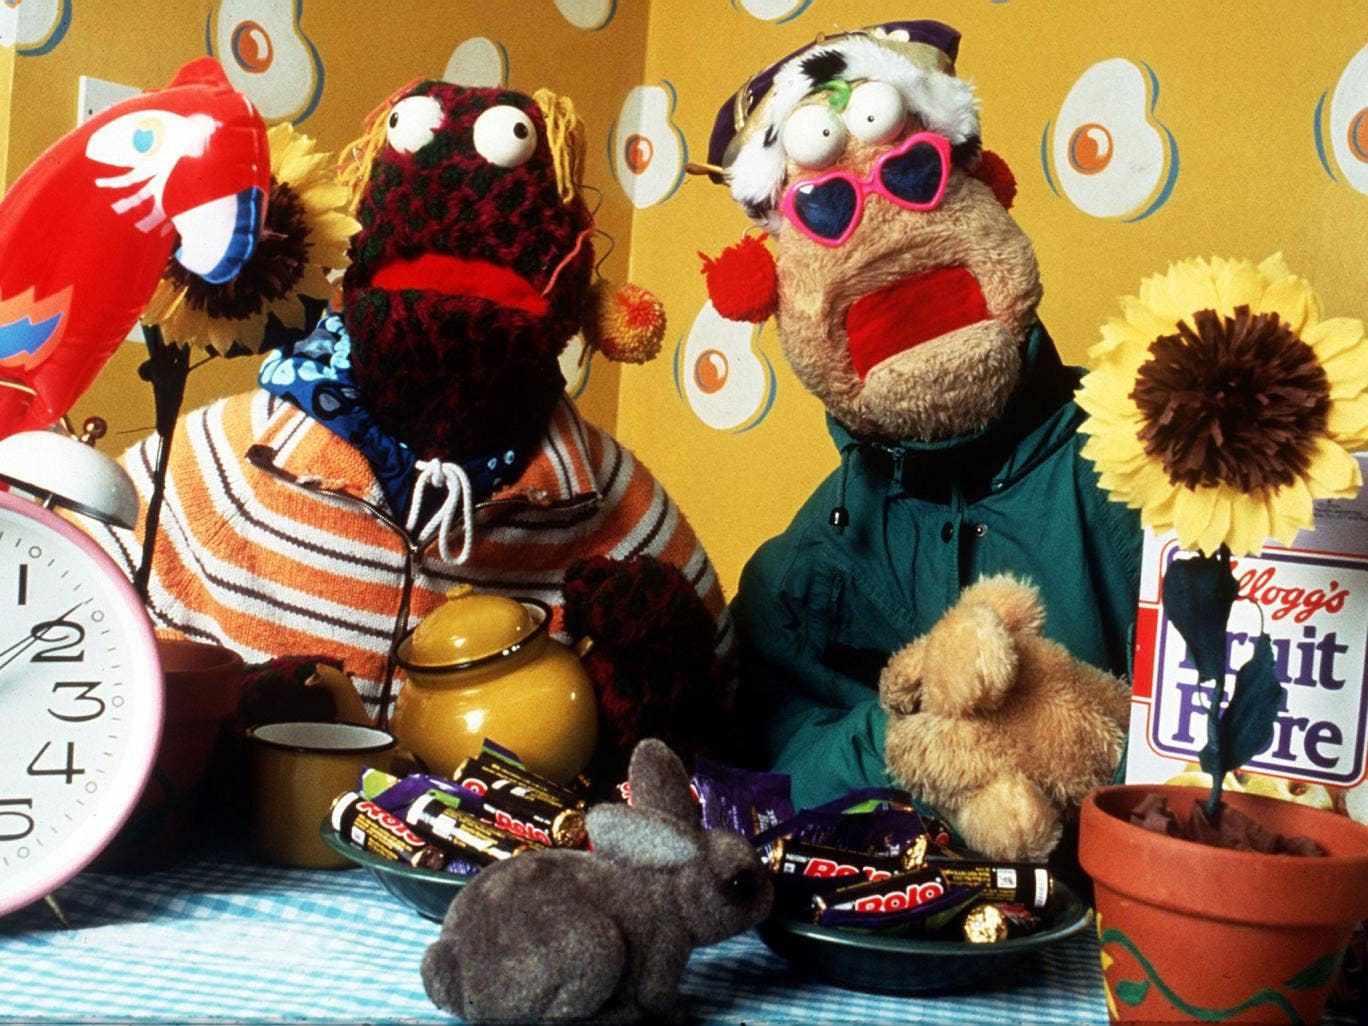 Zig and Zag, an Irish puppet duo performed by Mick O'Hara and Ciaran Morrison, were popular on Channel 4's Big Breakfast